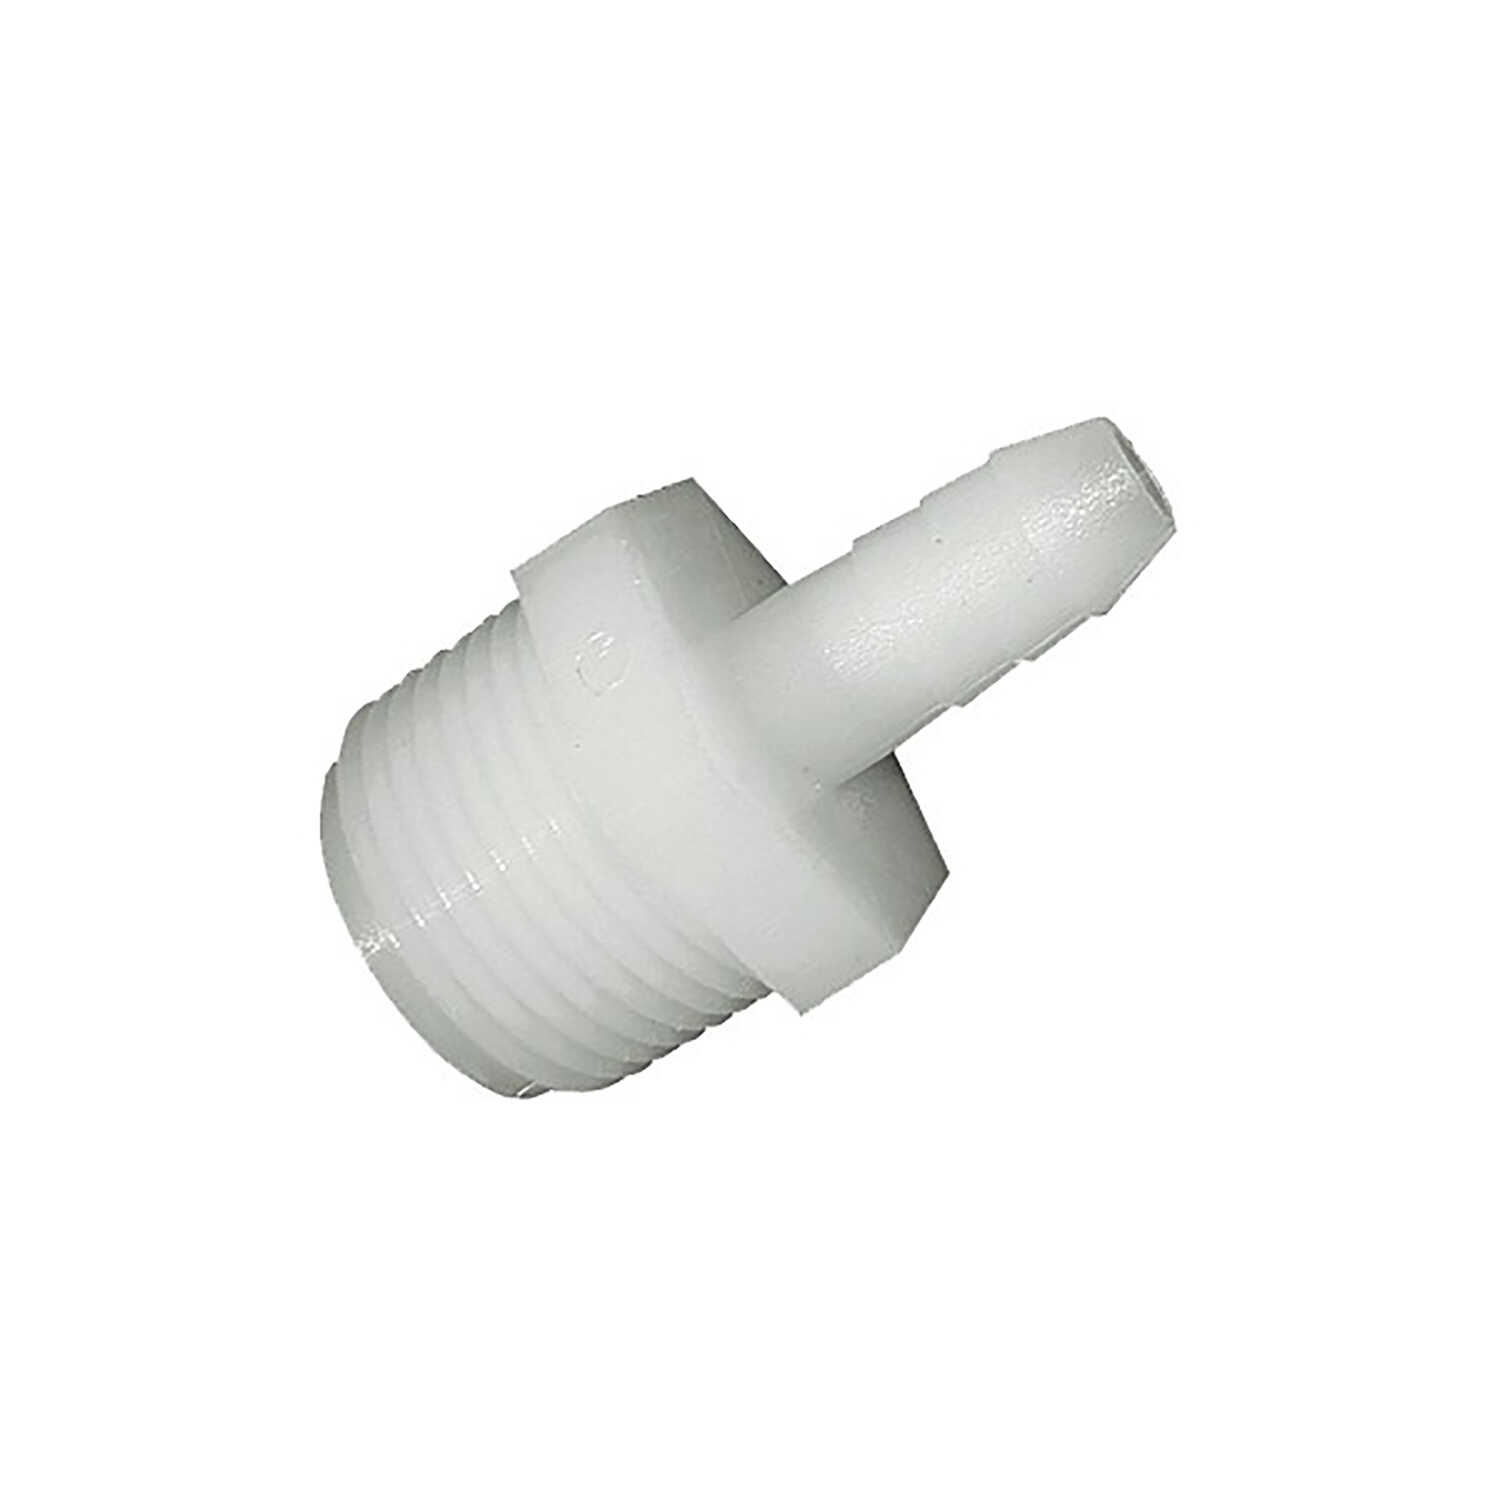 Green Leaf  Nylon  3/8 in. Dia. x 1/4 in. Dia. Adapter  1 pk